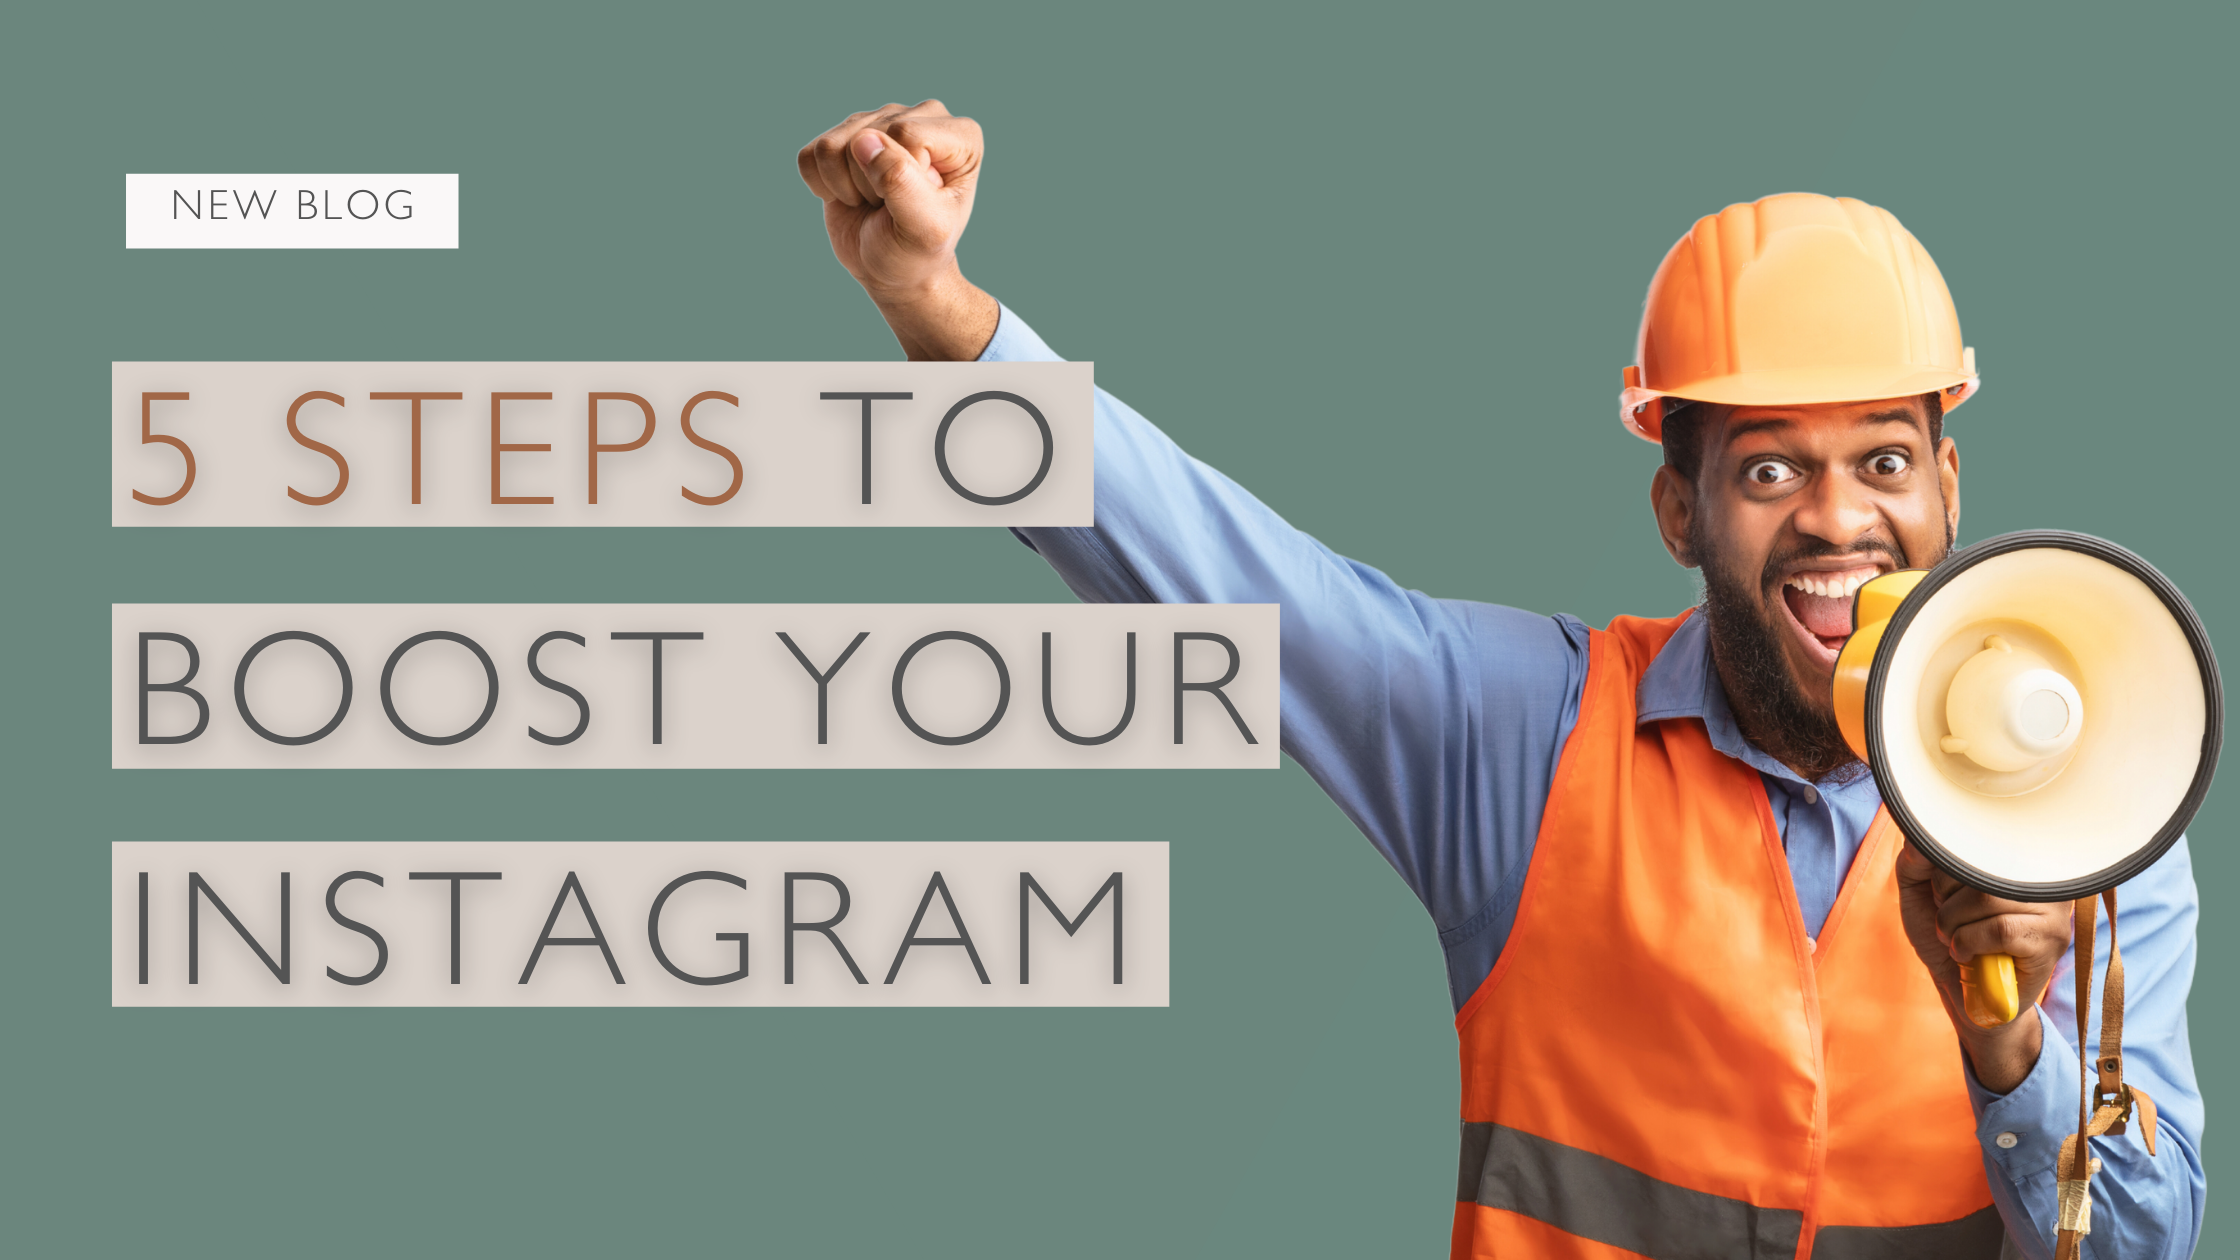 5 steps to grow your Instagram